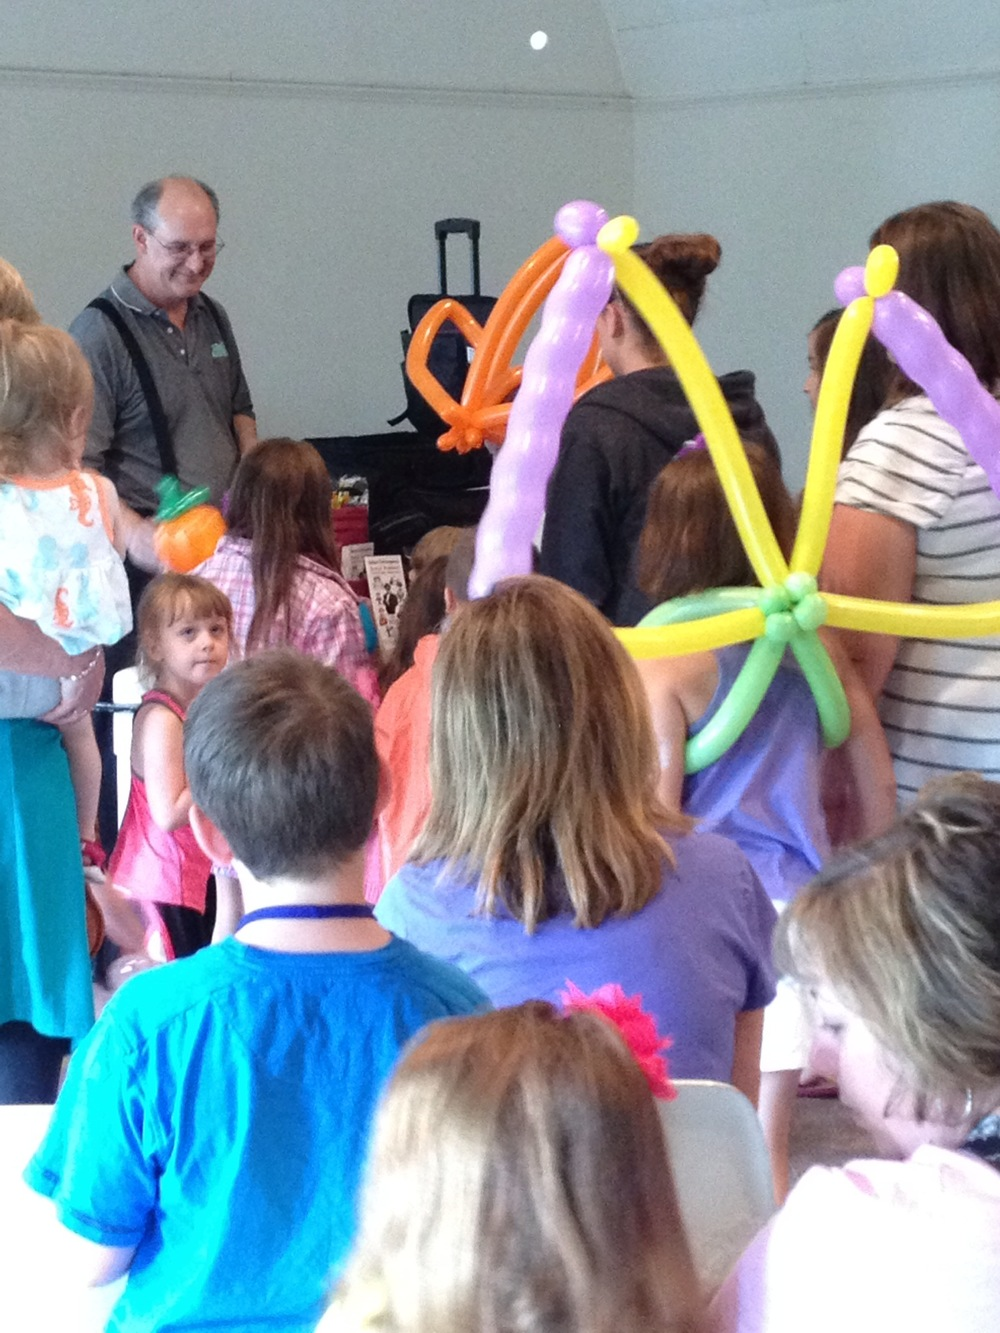 Daryl Baldwin delighted children with balloon animals.  40 children and 25 adults attended.